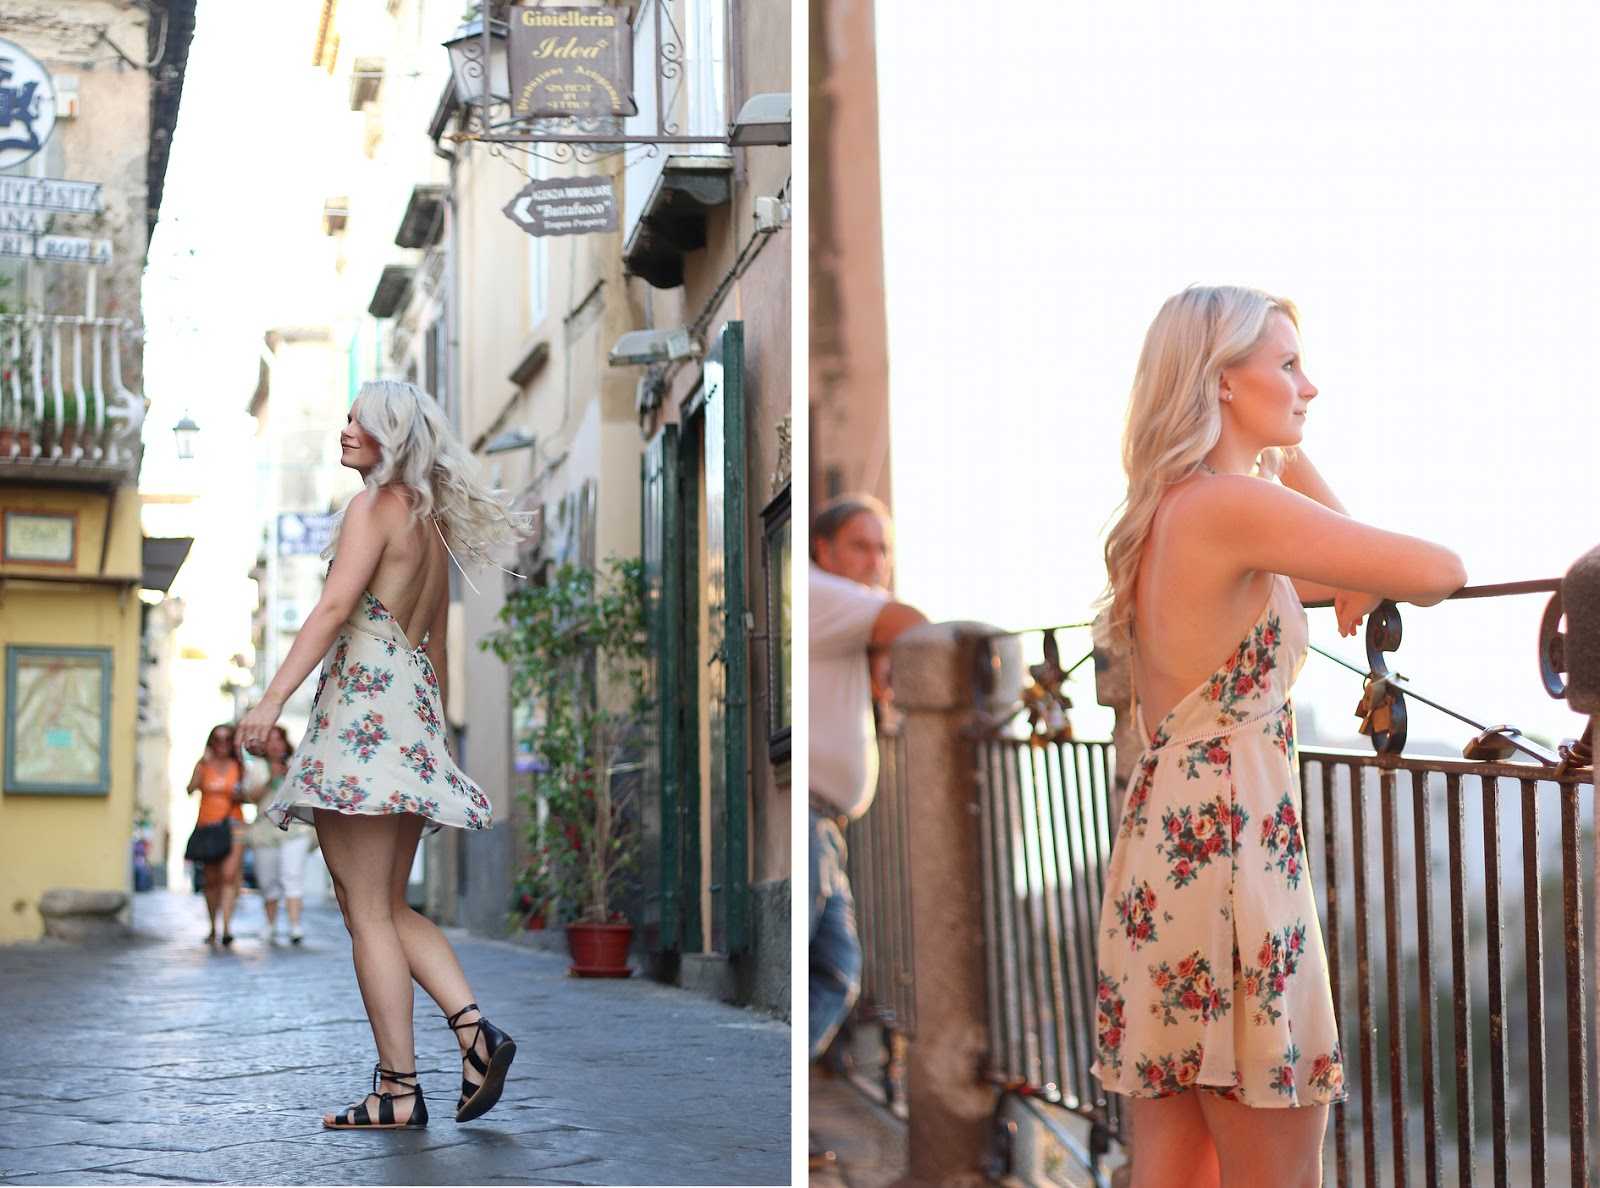 a blonde girl stands in front of purple flowers, wearing a floral dress in italy and twirls in the small streets